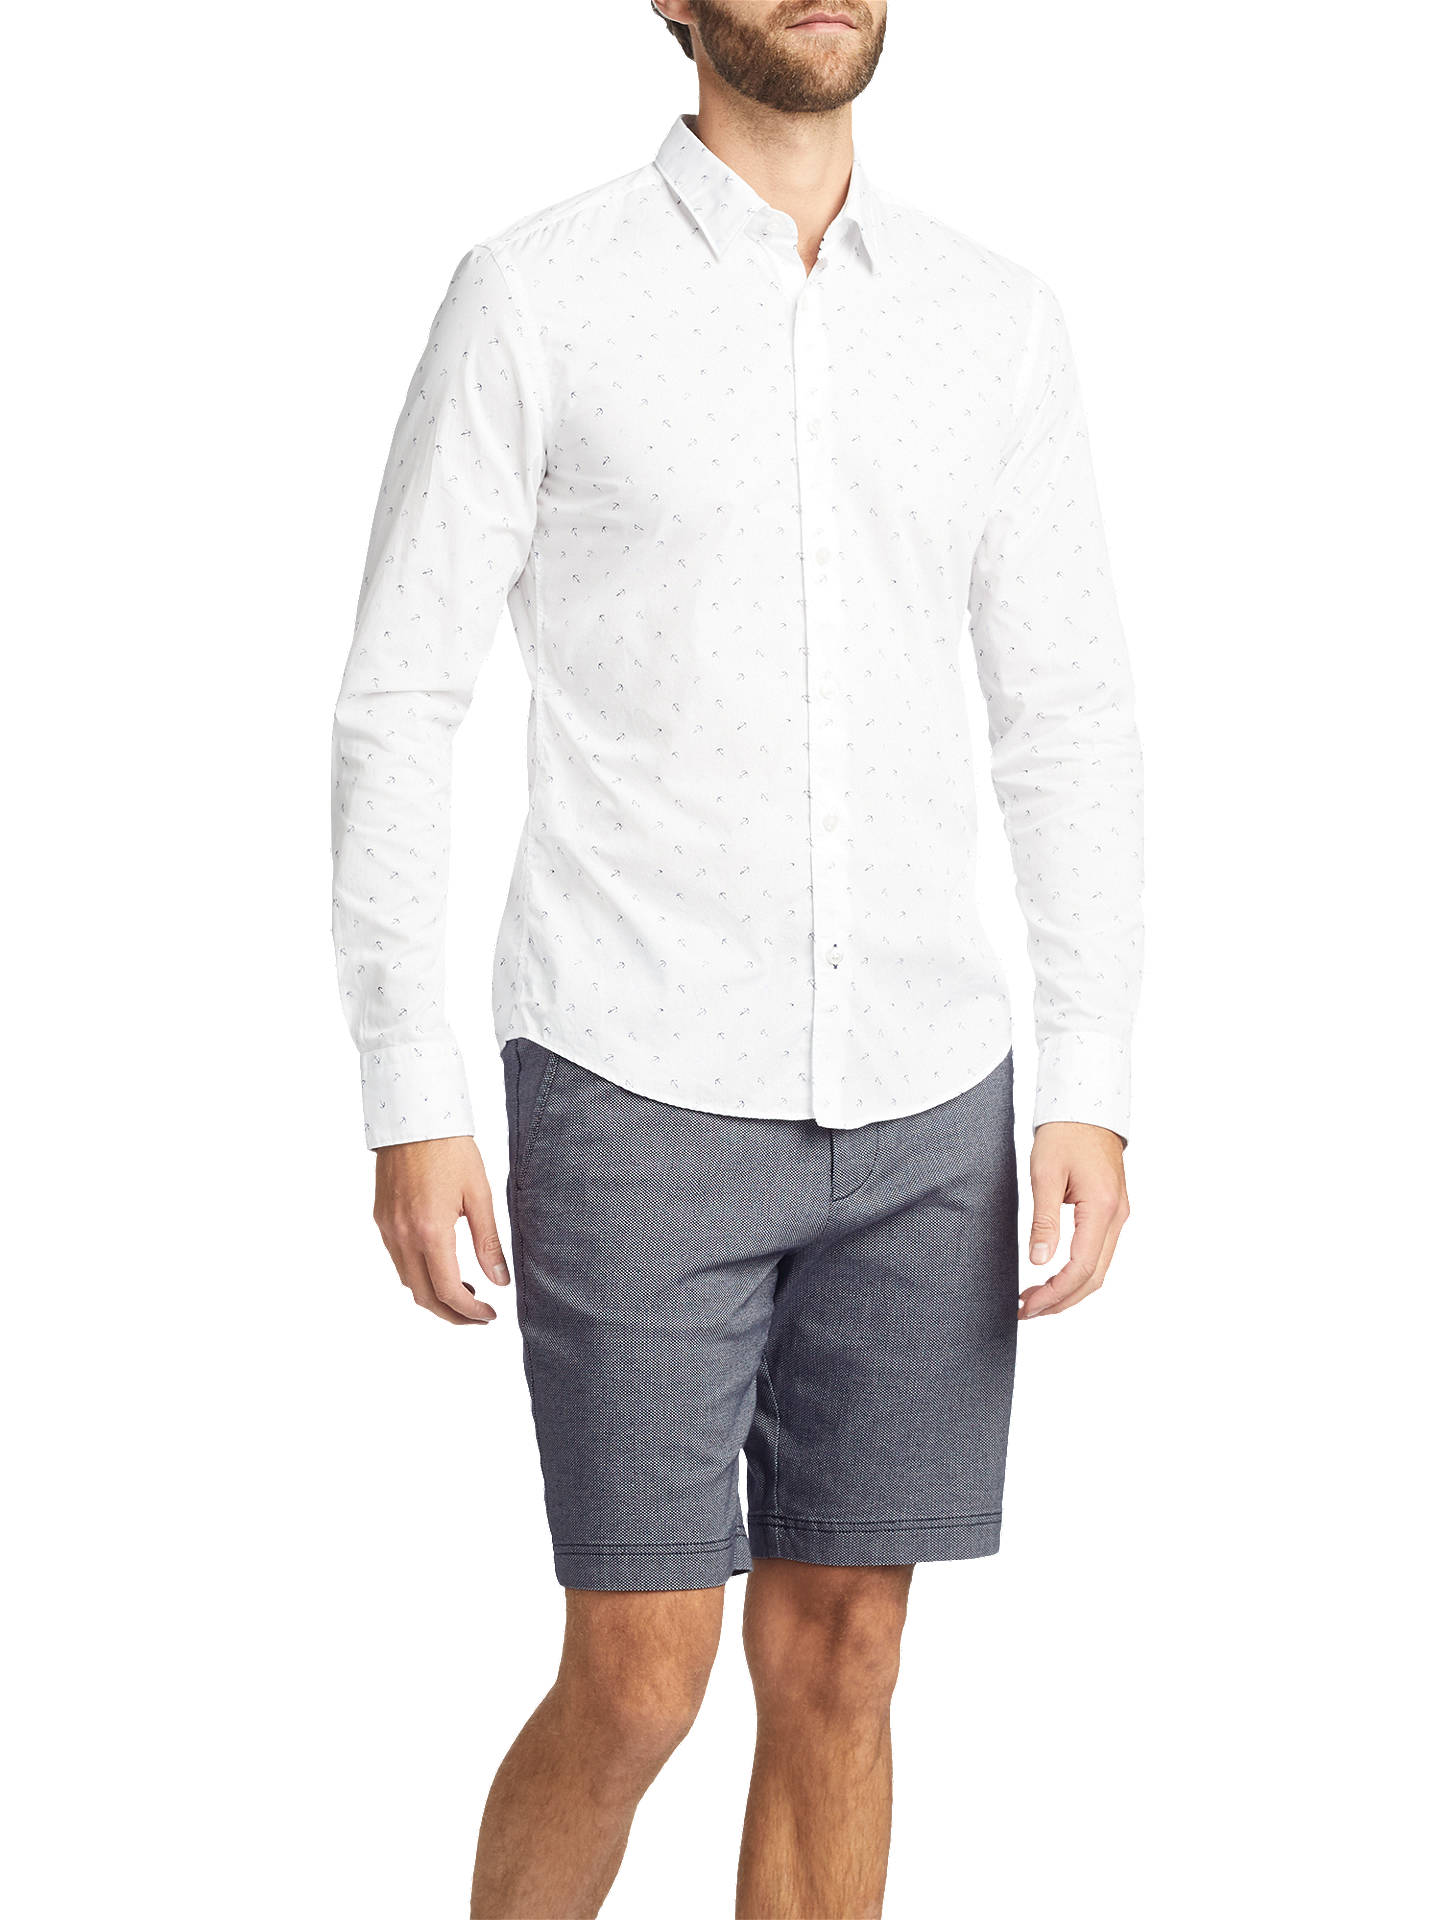 BuyBOSS Crigan Regular Fit Chino Shorts, Navy, 30R Online at johnlewis.com